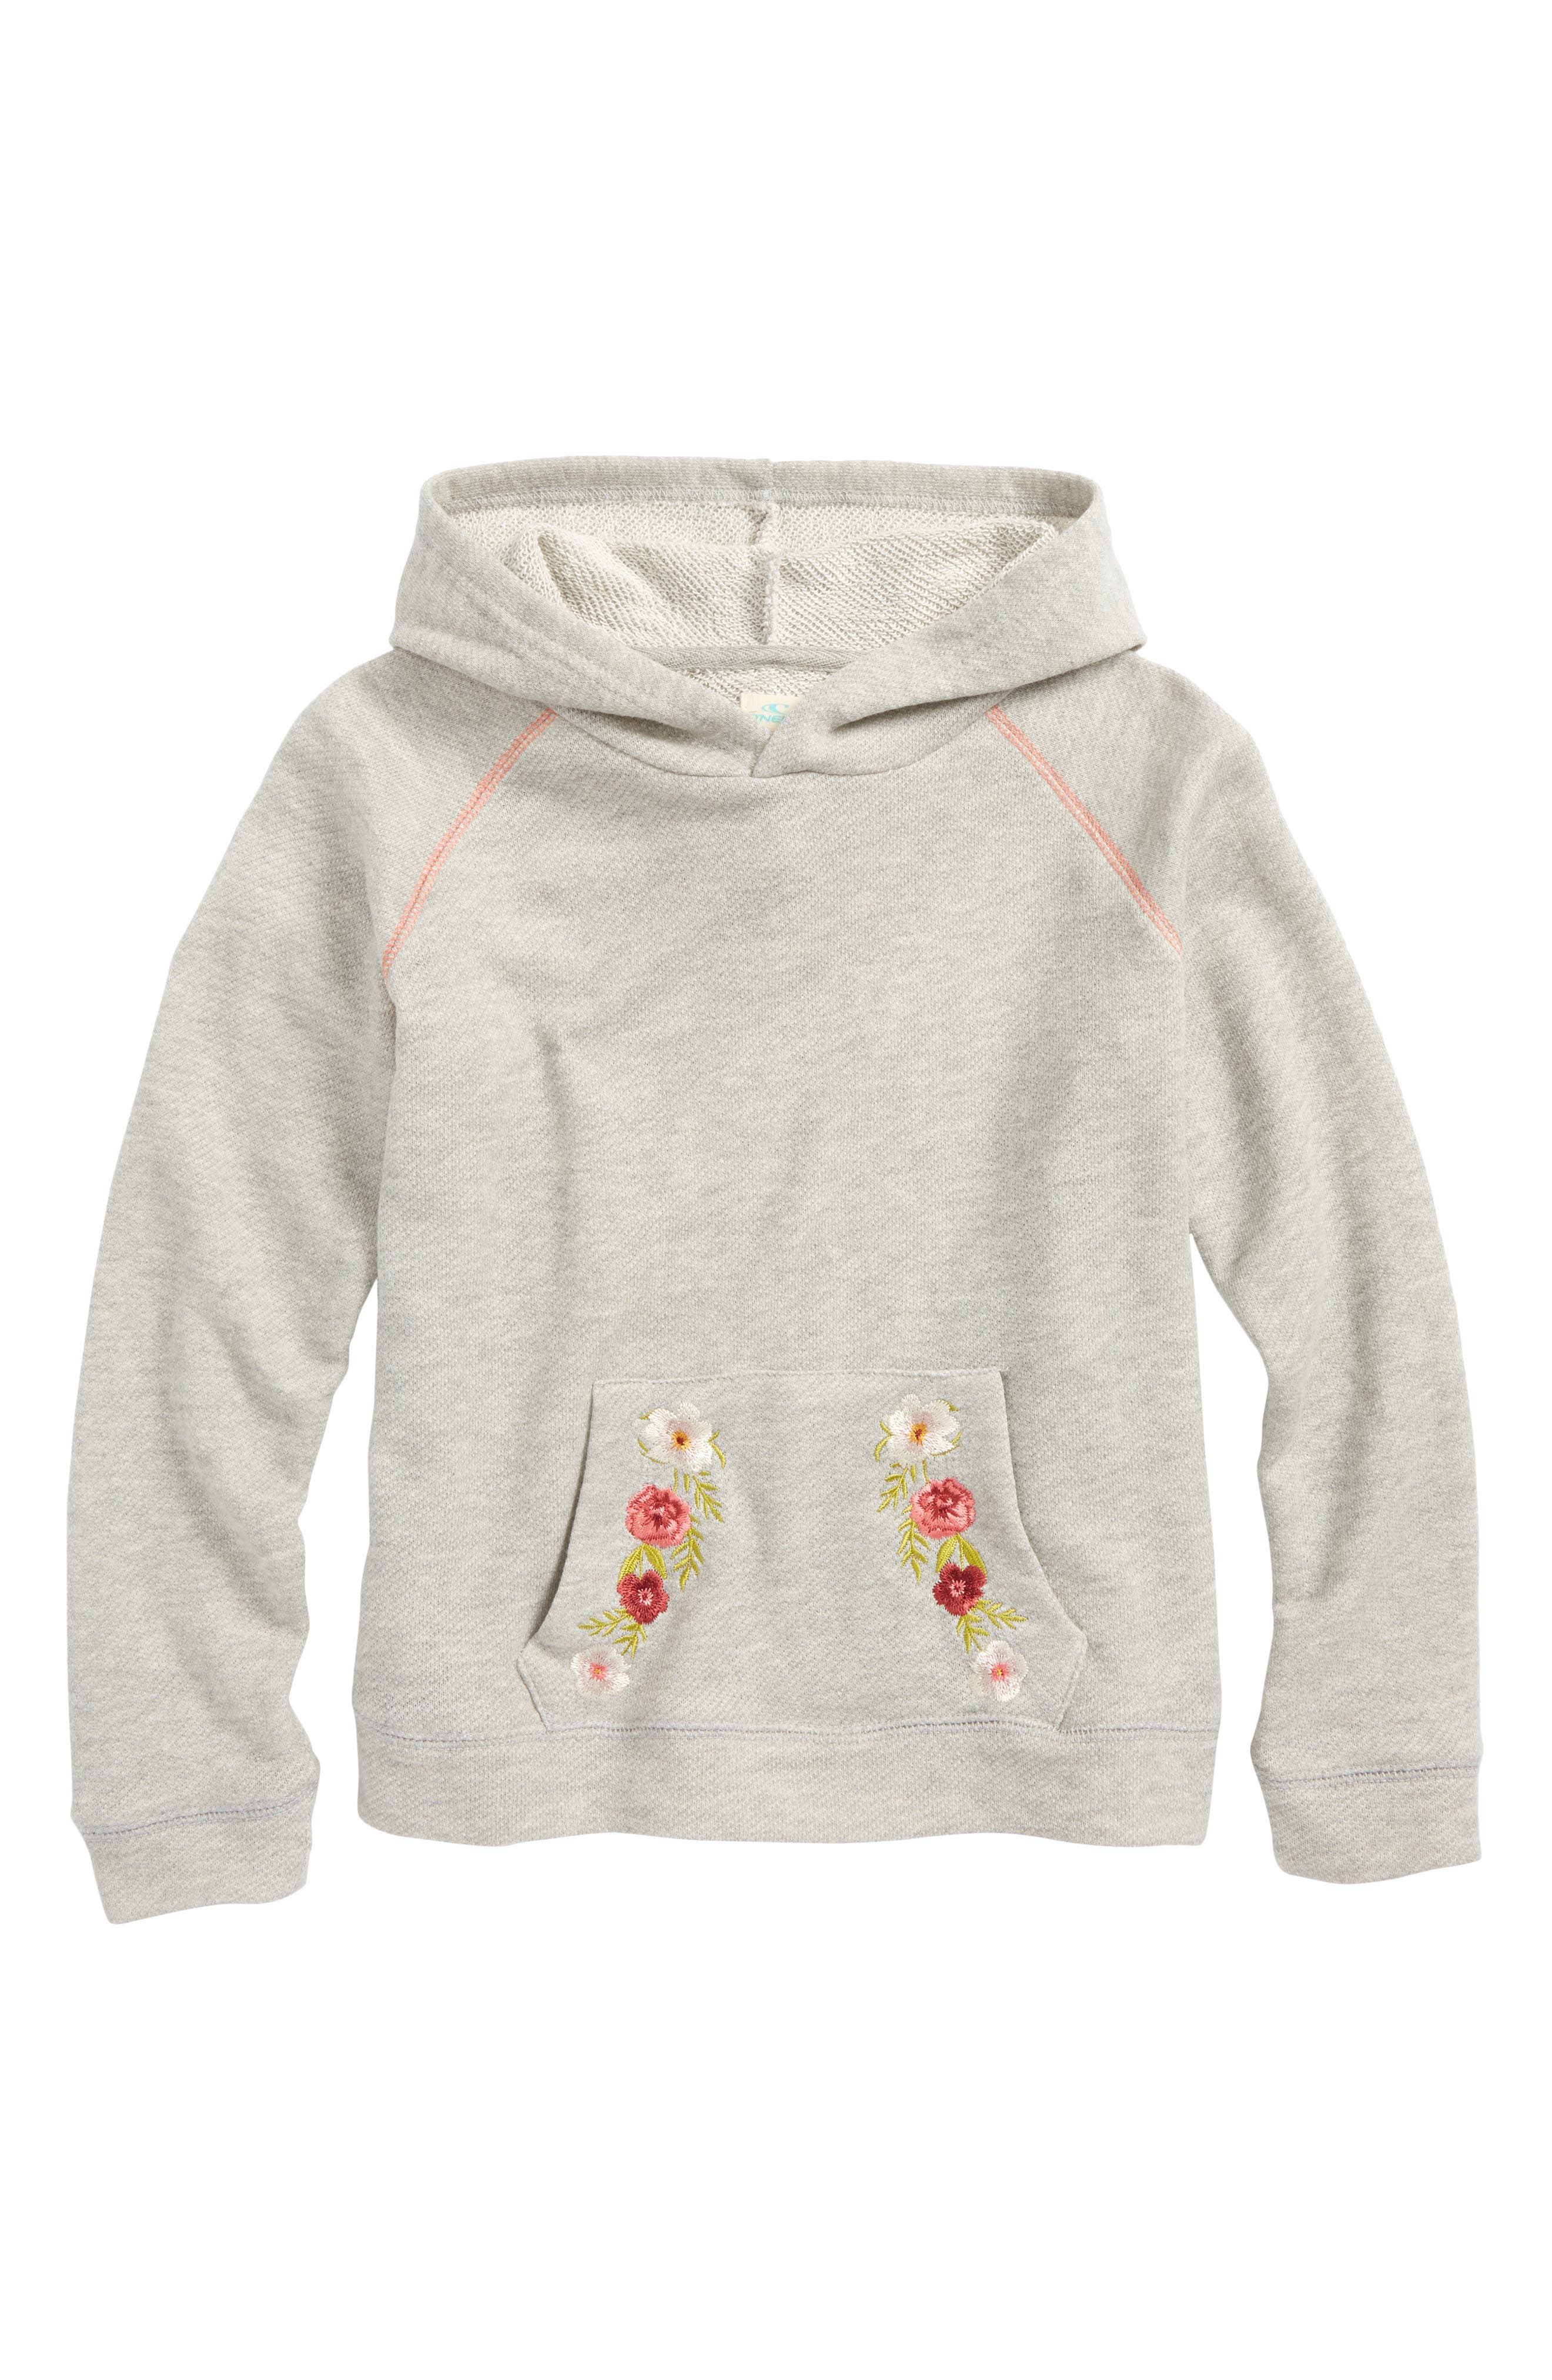 Brianna Pullover Hoodie,                         Main,                         color, Heather Grey